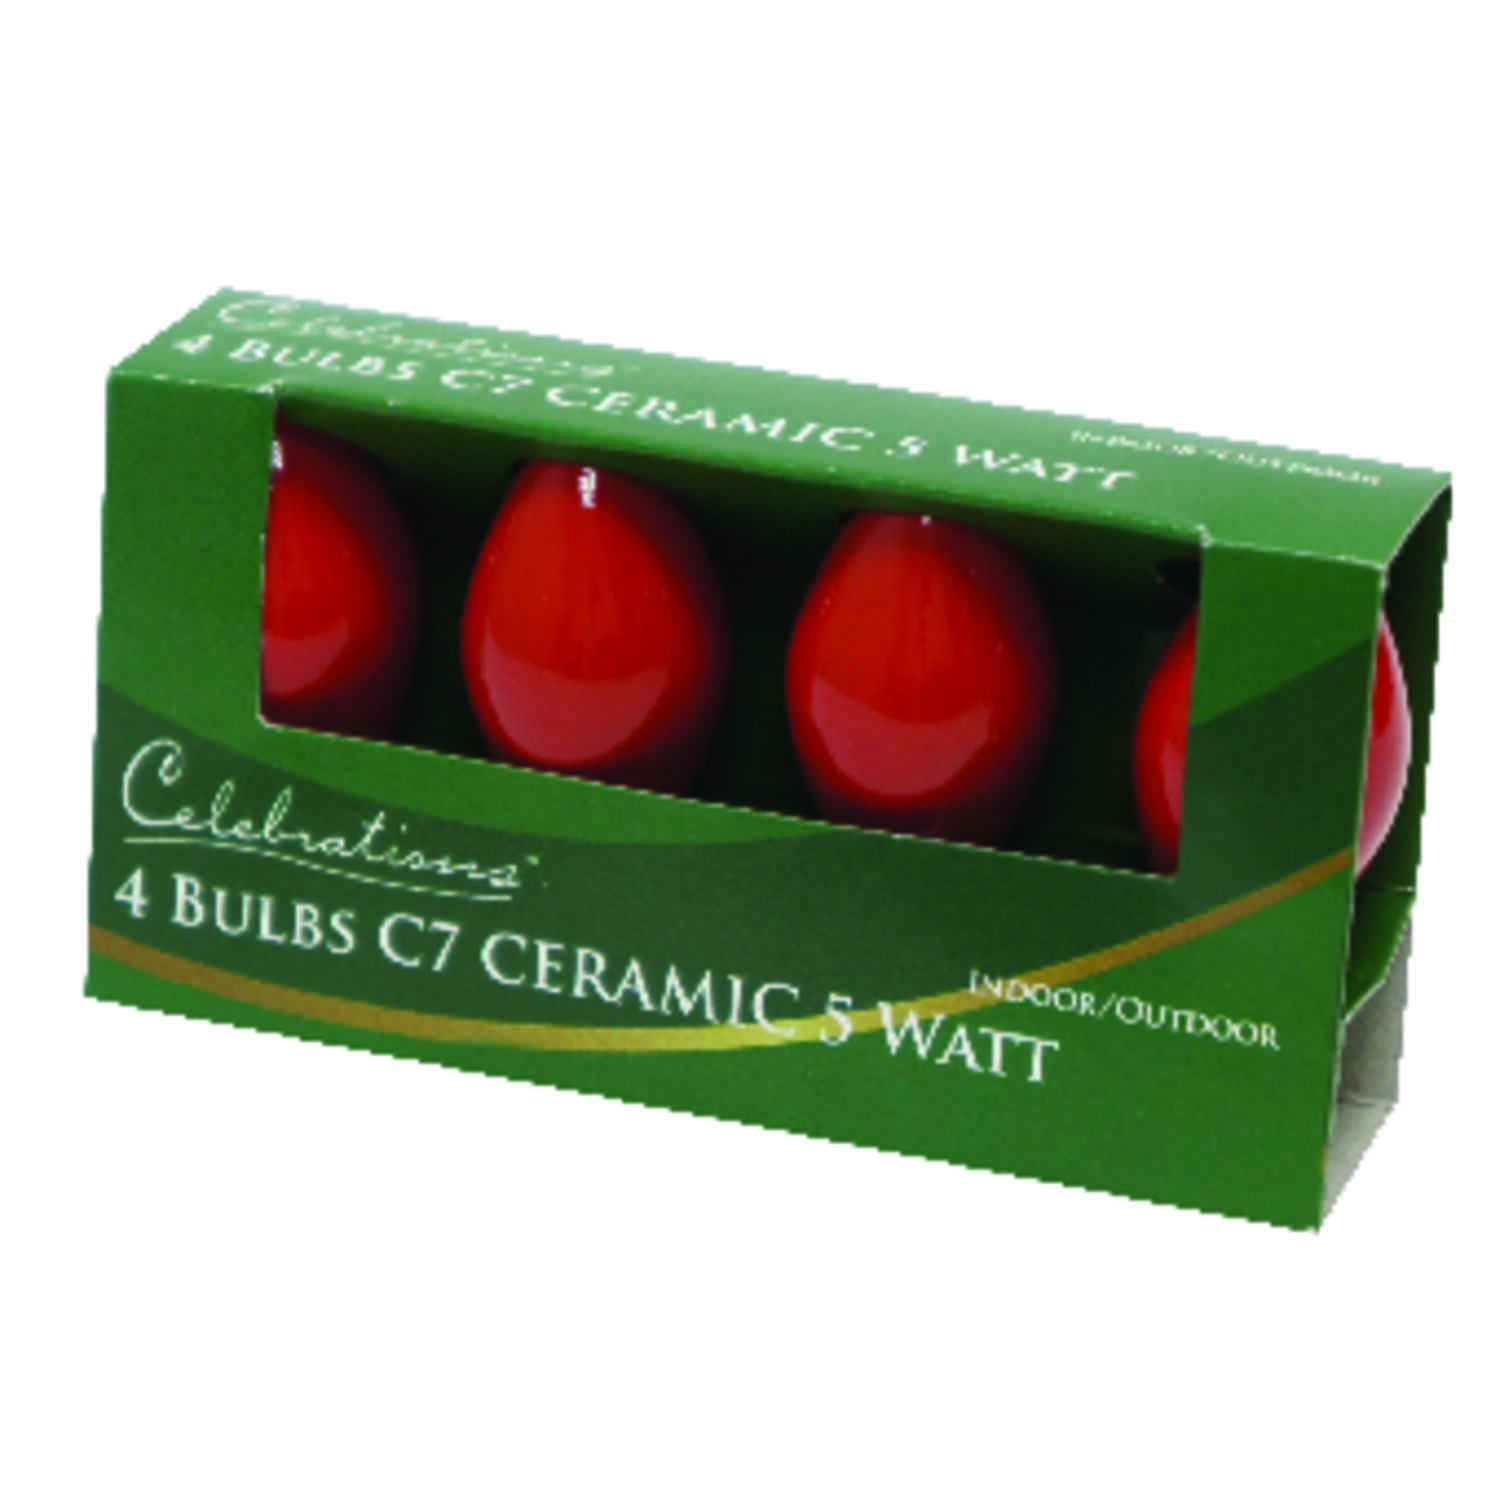 Celebrations  Incandescent  Ceramic C7  Replacement Bulb  Red  4 pk